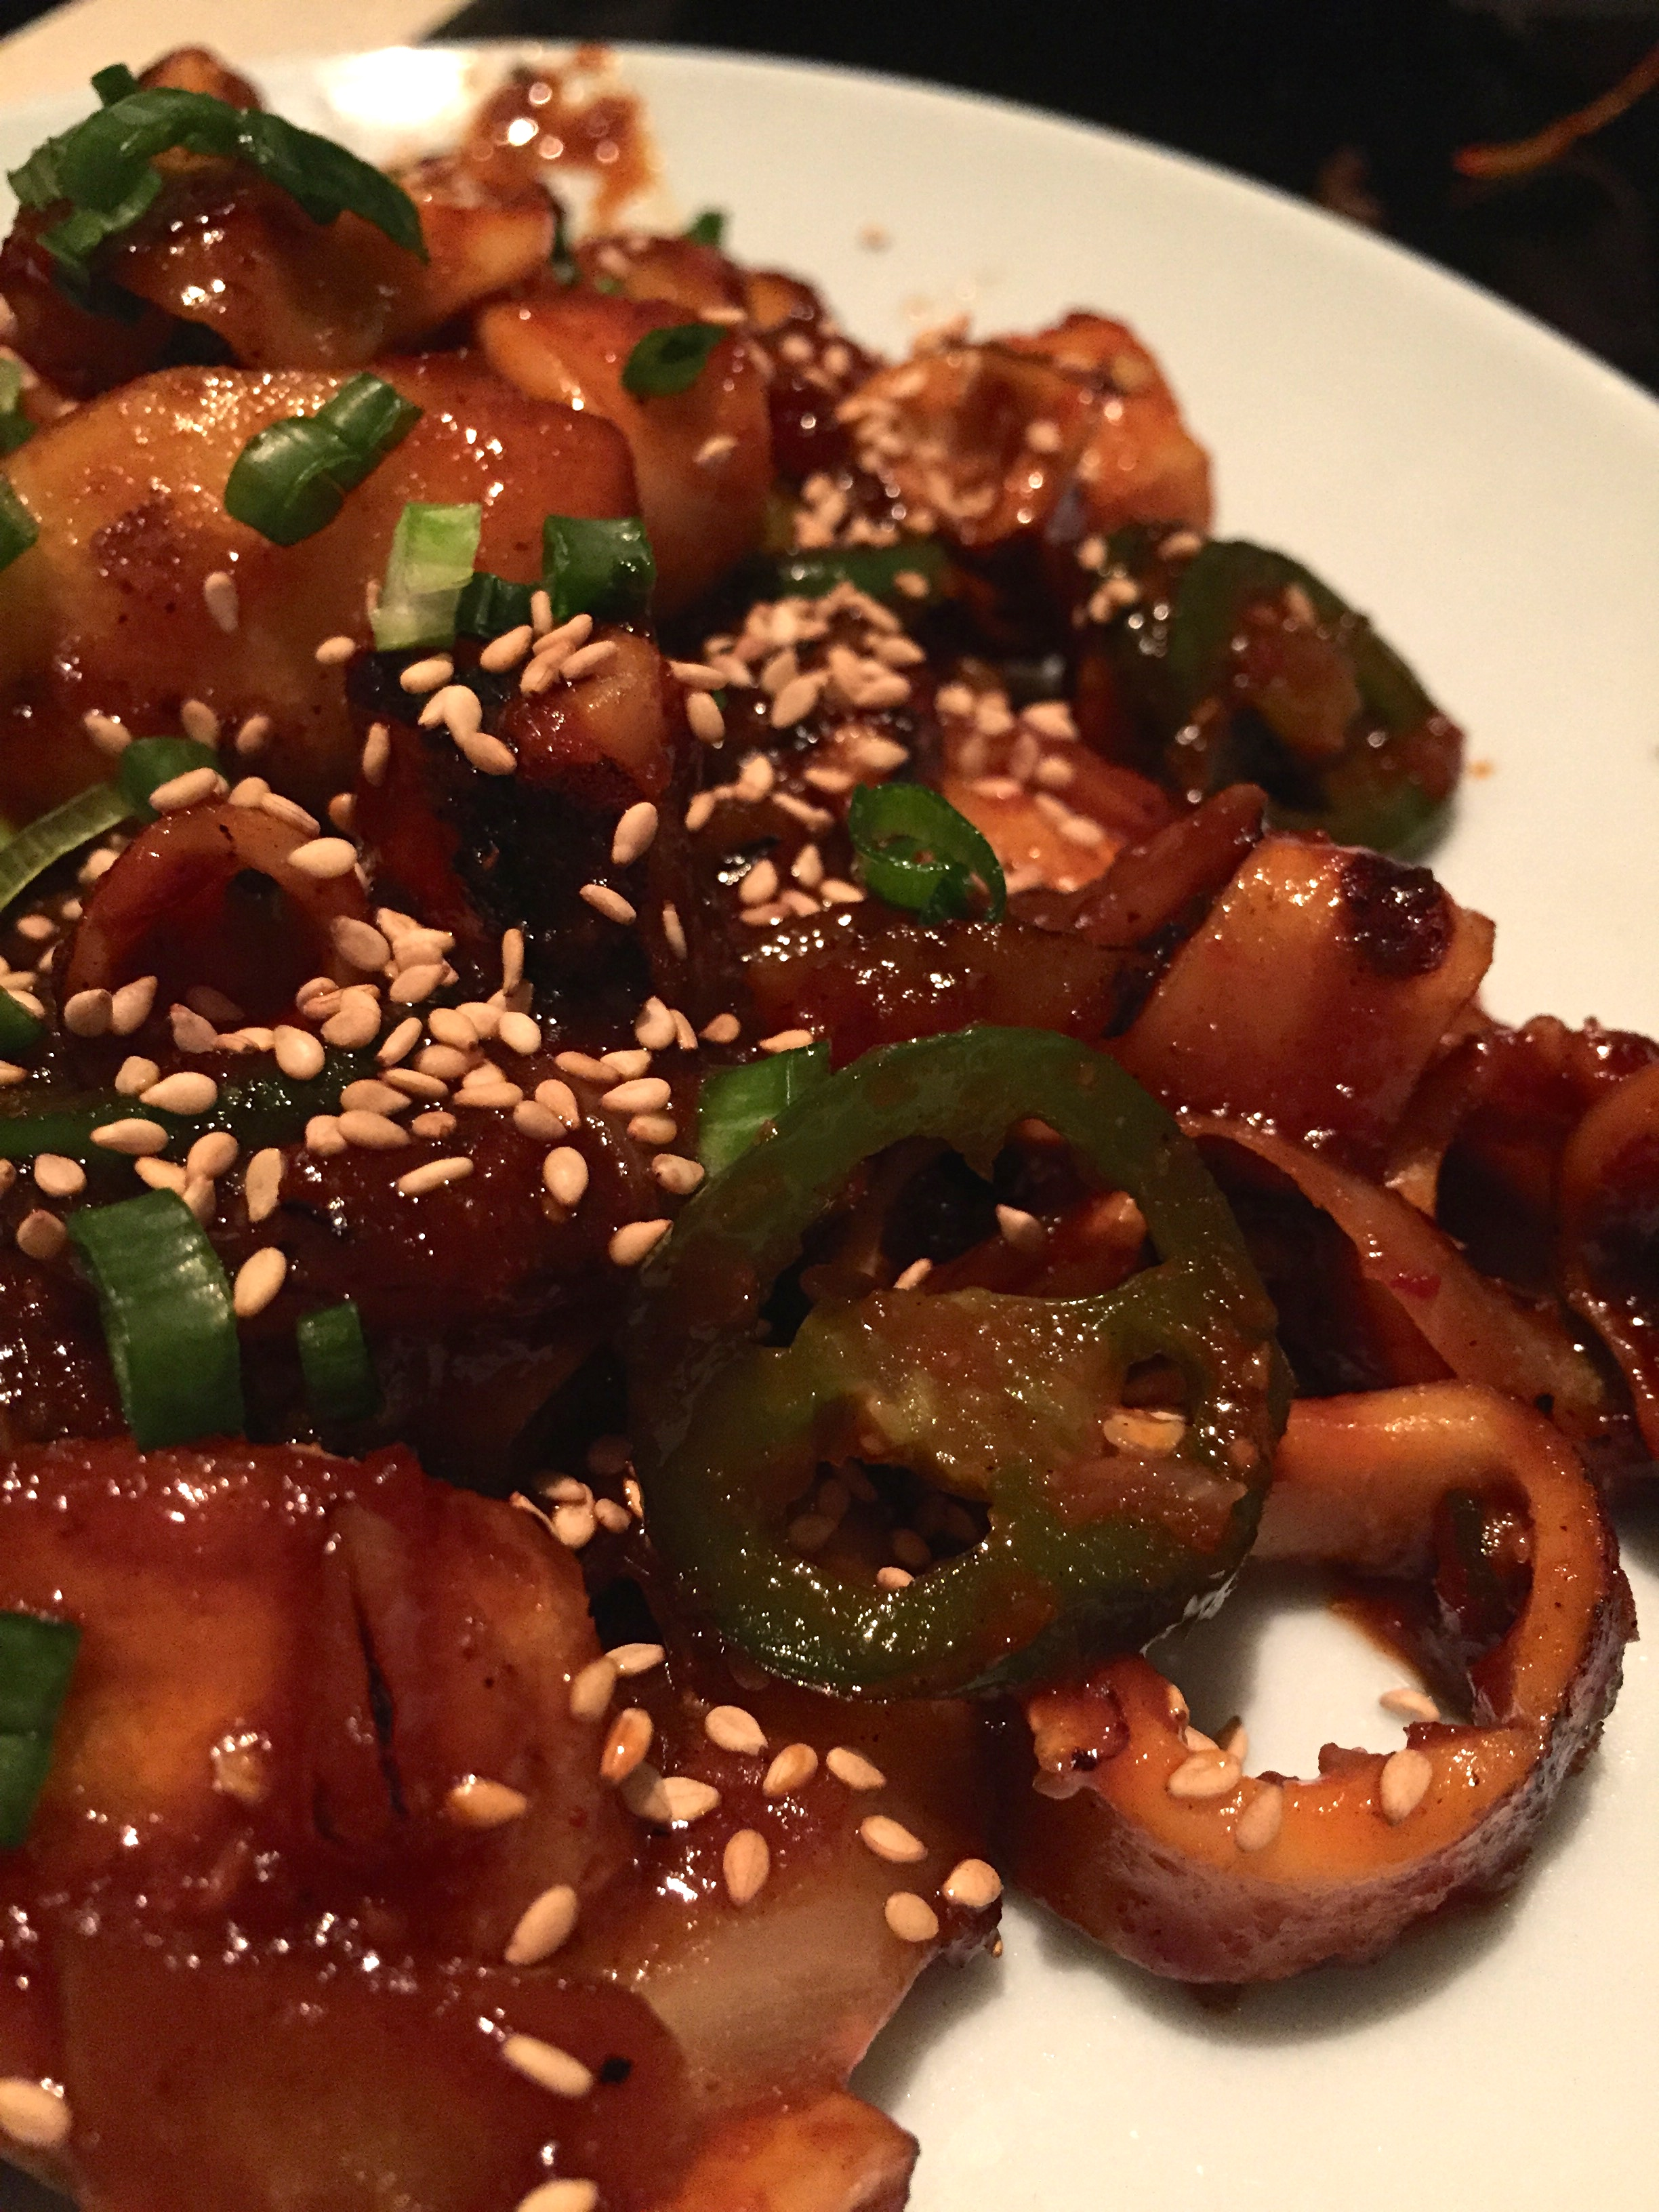 Squid.Spicy.Yum - grilled squid, rice cakes, and jalapeno.